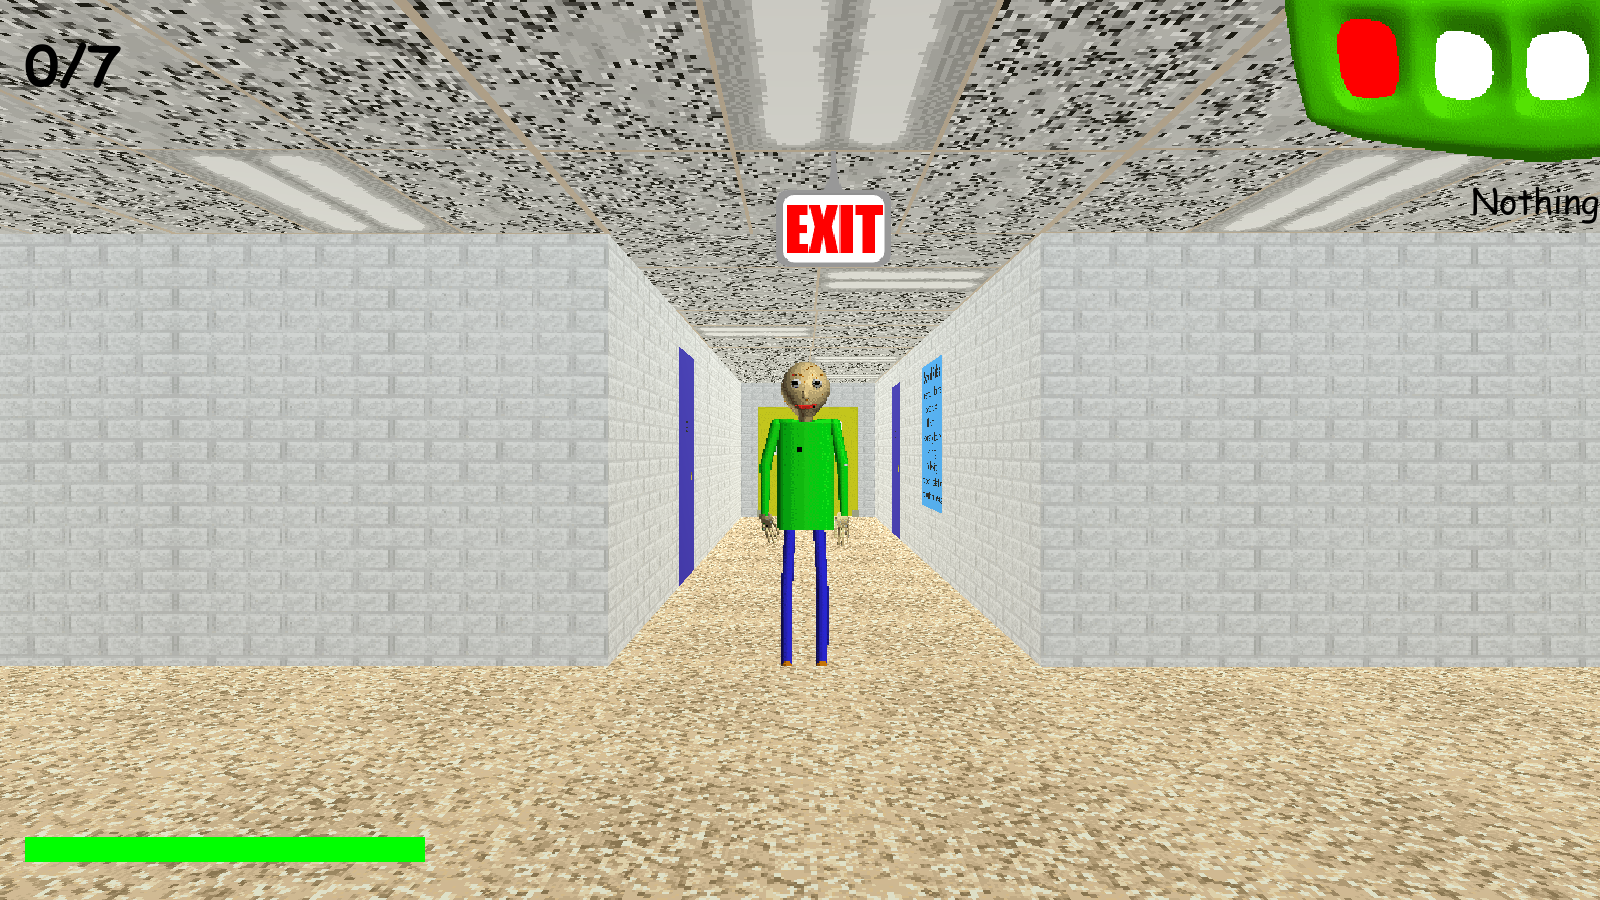 Learn Math And The Meaning Of Fear In Baldi's Basics